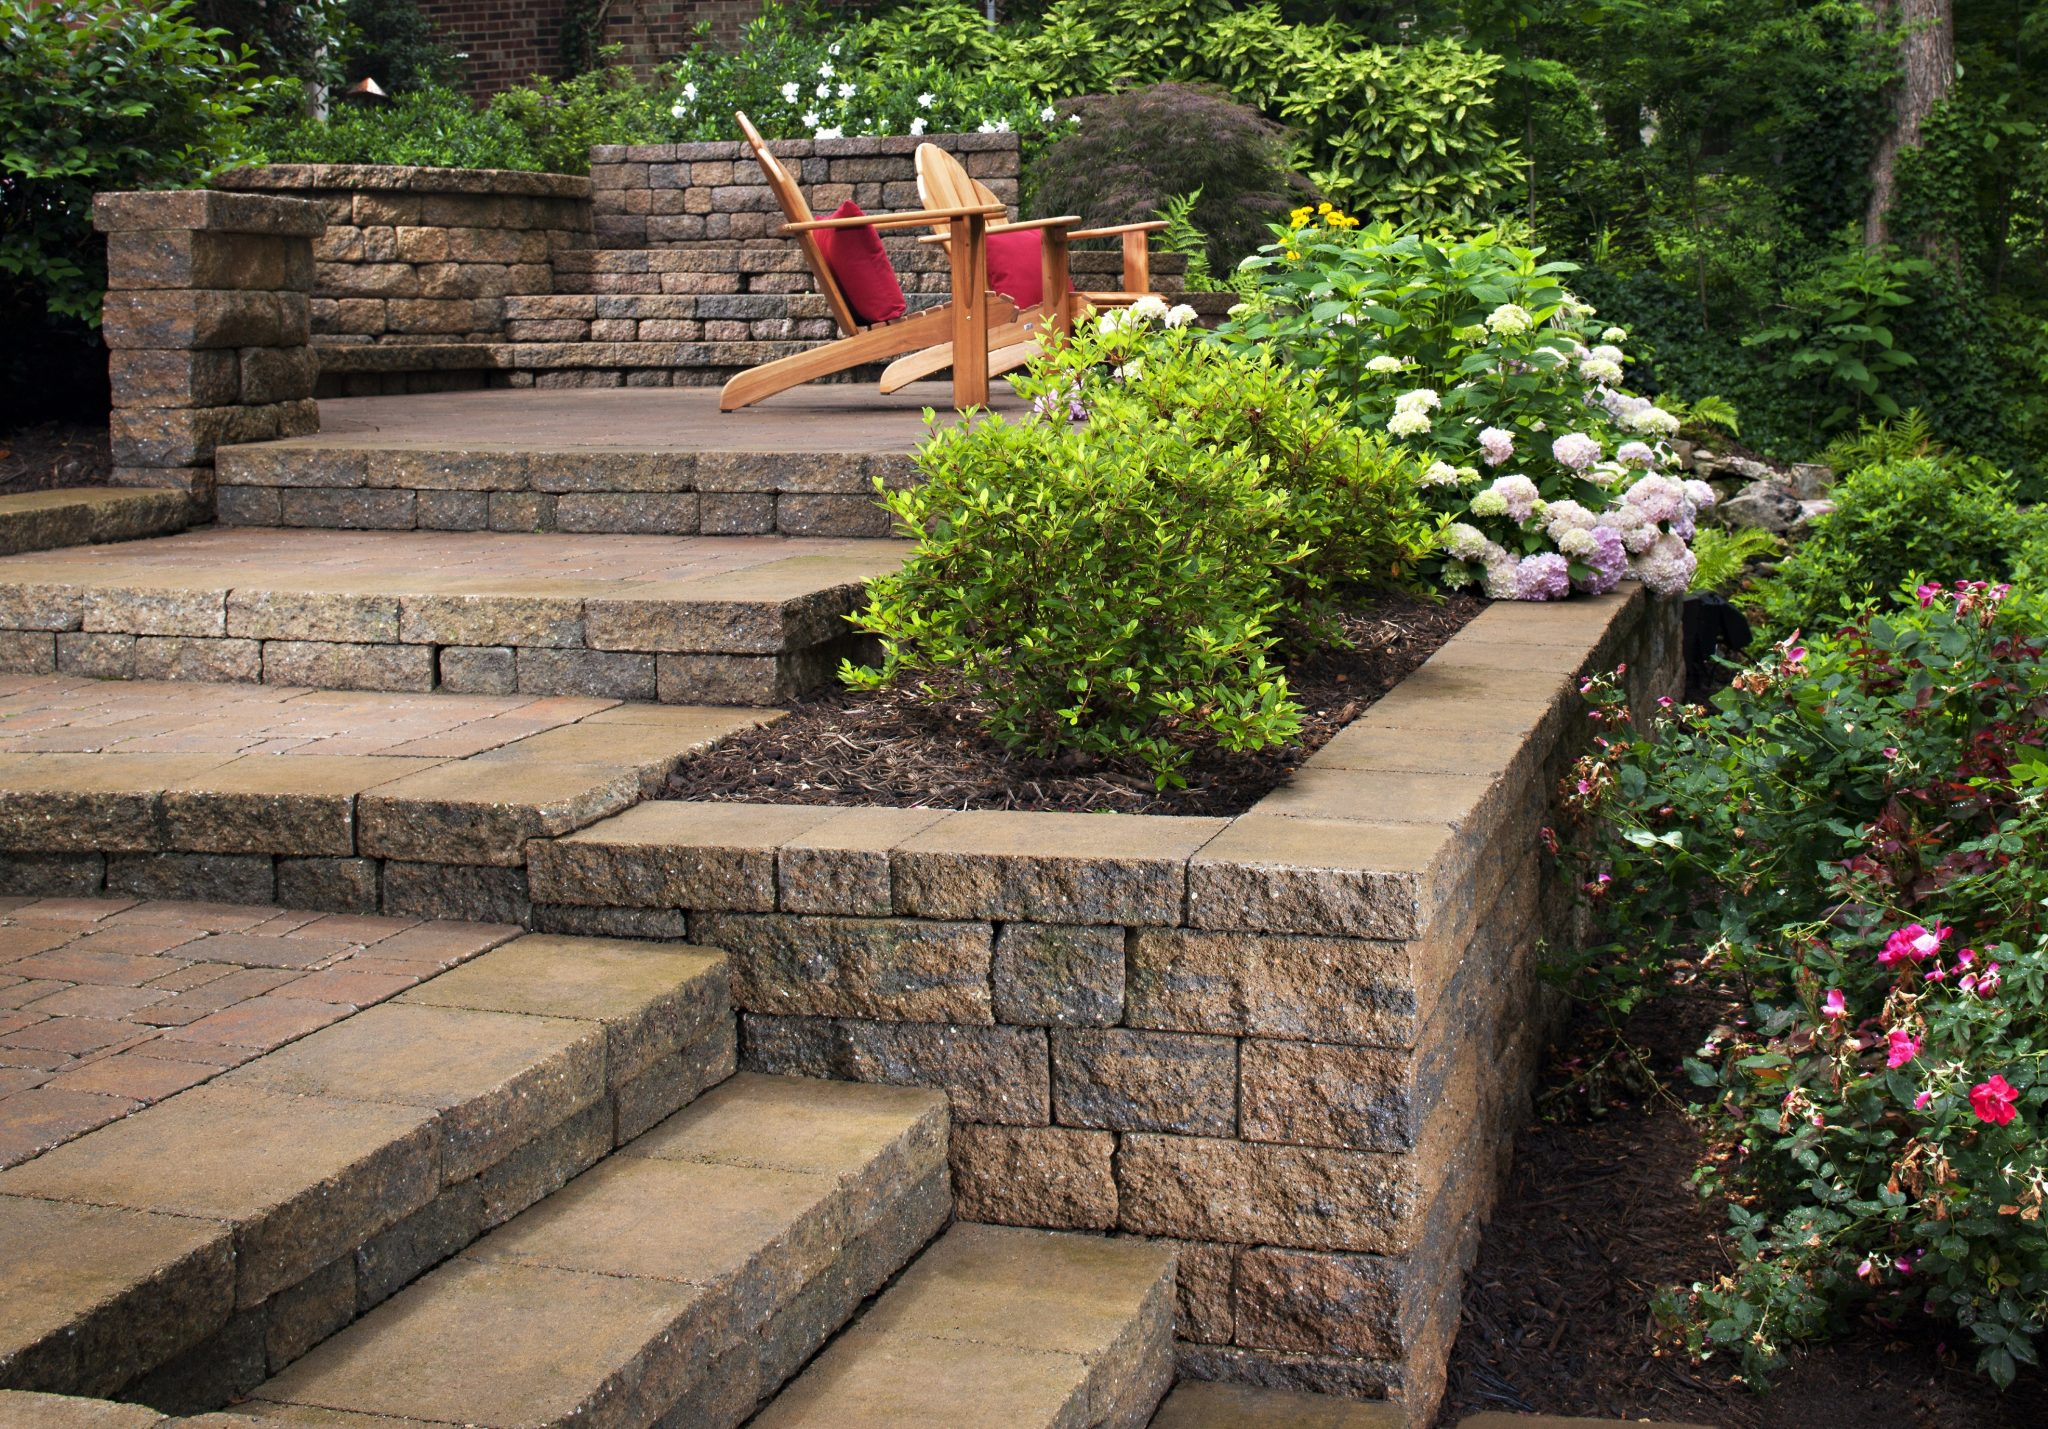 Landscaping Ideas For Hillside: Backyard Slope Solutions ... on Backyard With Slope Ideas  id=73167